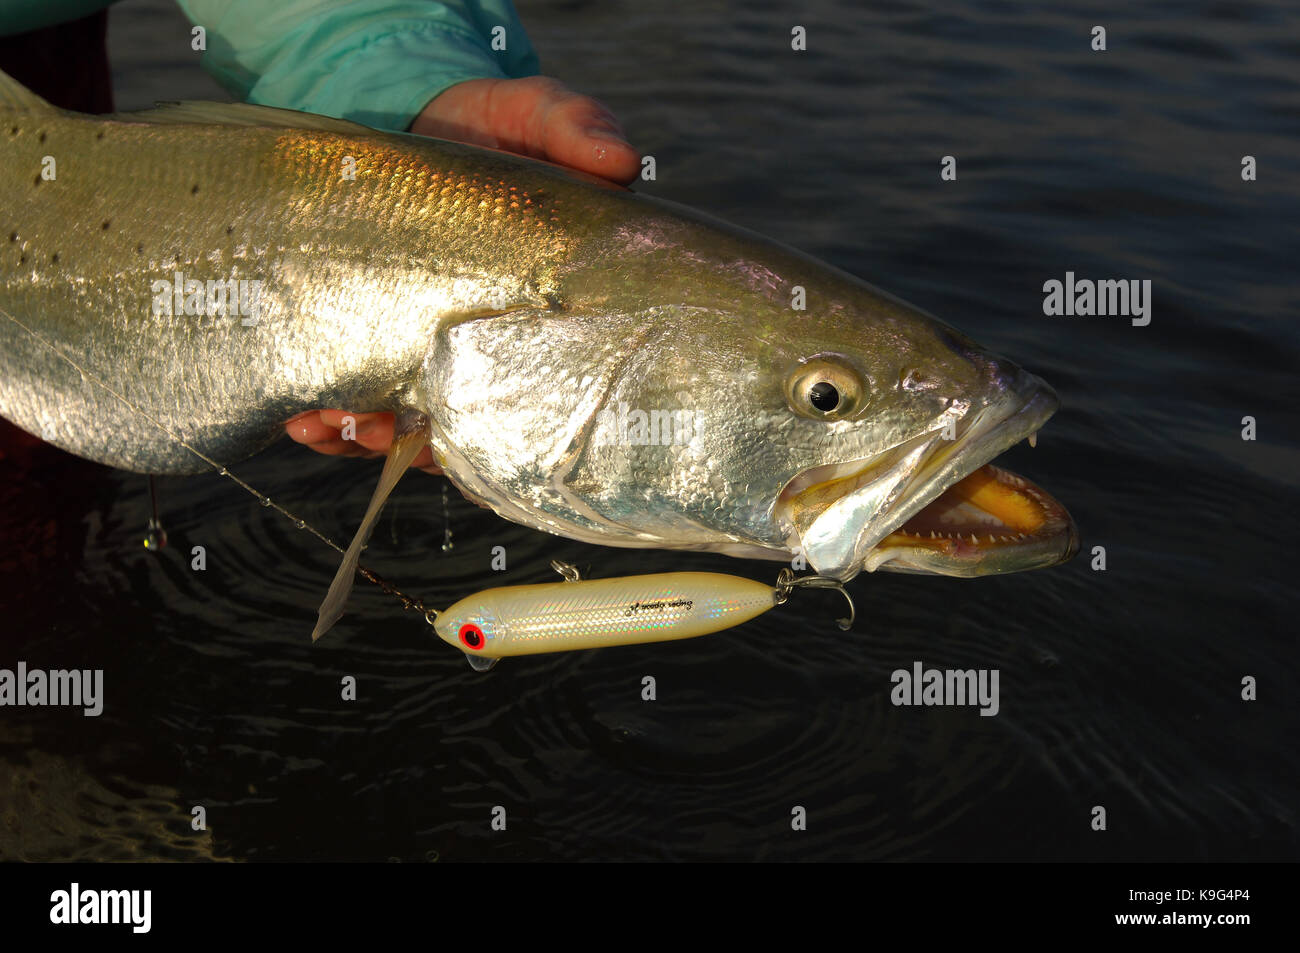 Seatrout fishing stock photos seatrout fishing stock for K9 fishing line